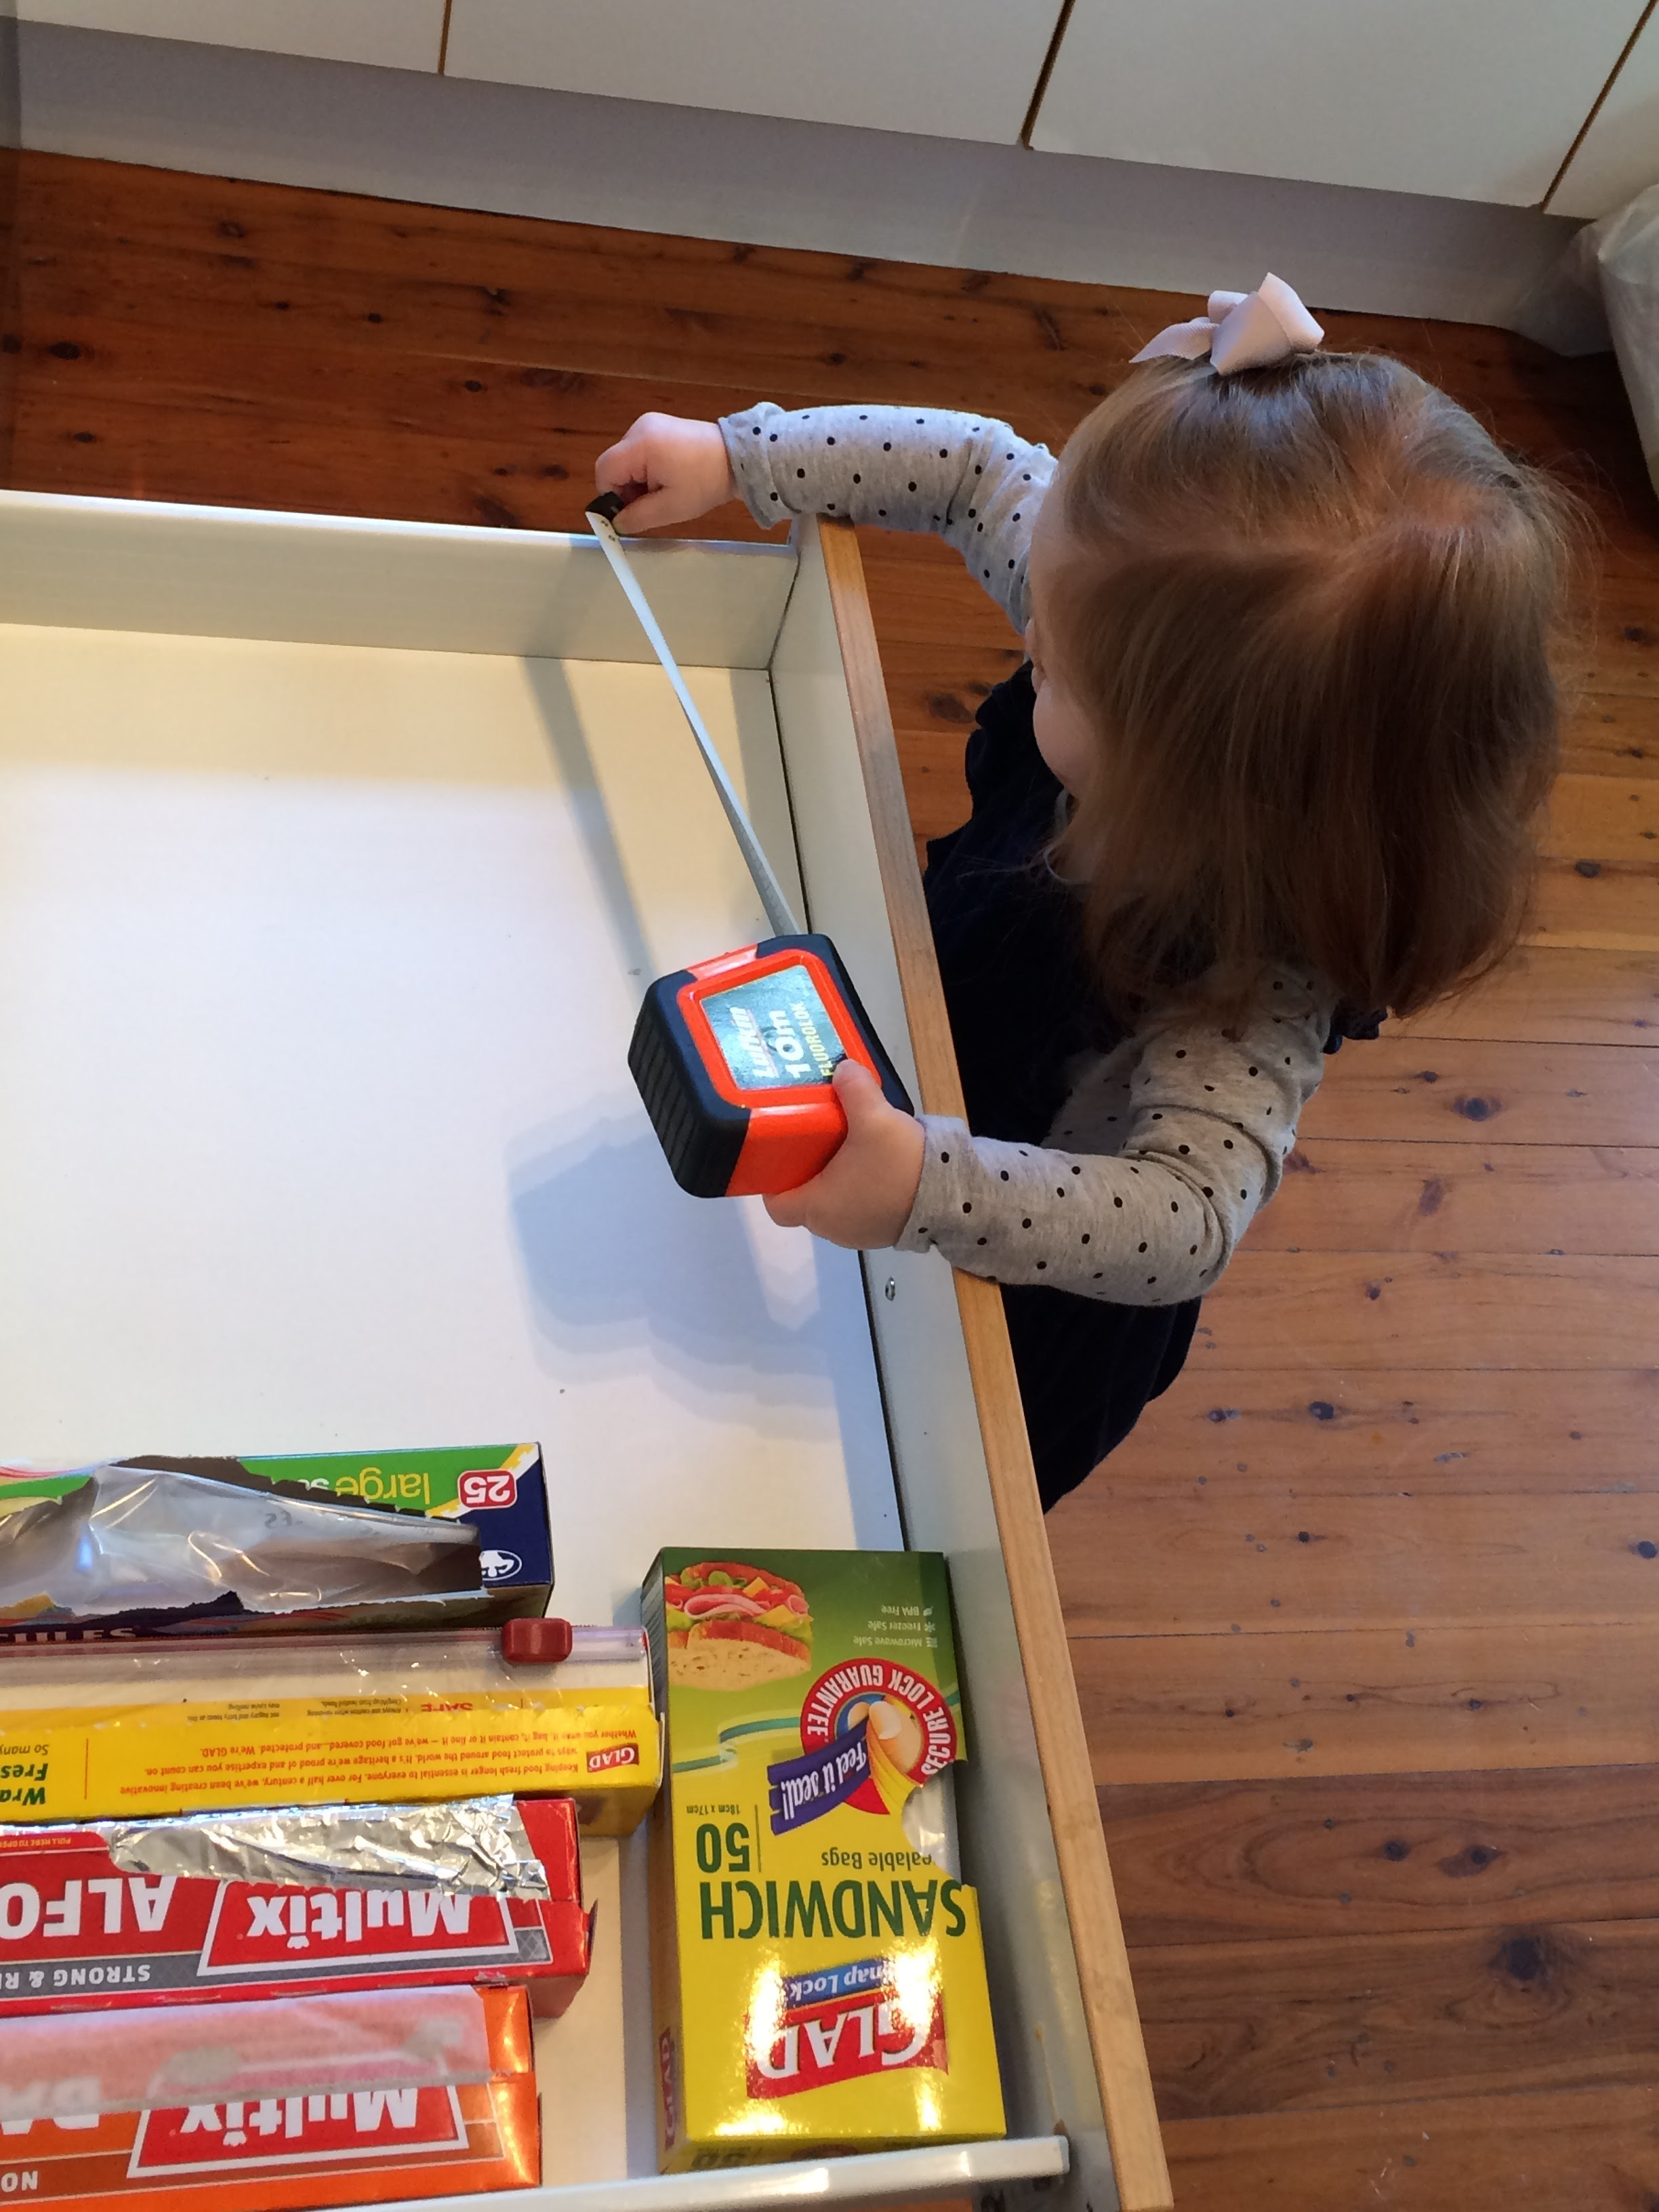 OUR LITTLE ONE MEASURING UP THAT KITCHEN - SHE IS READY TO GET THIS STARTED!!